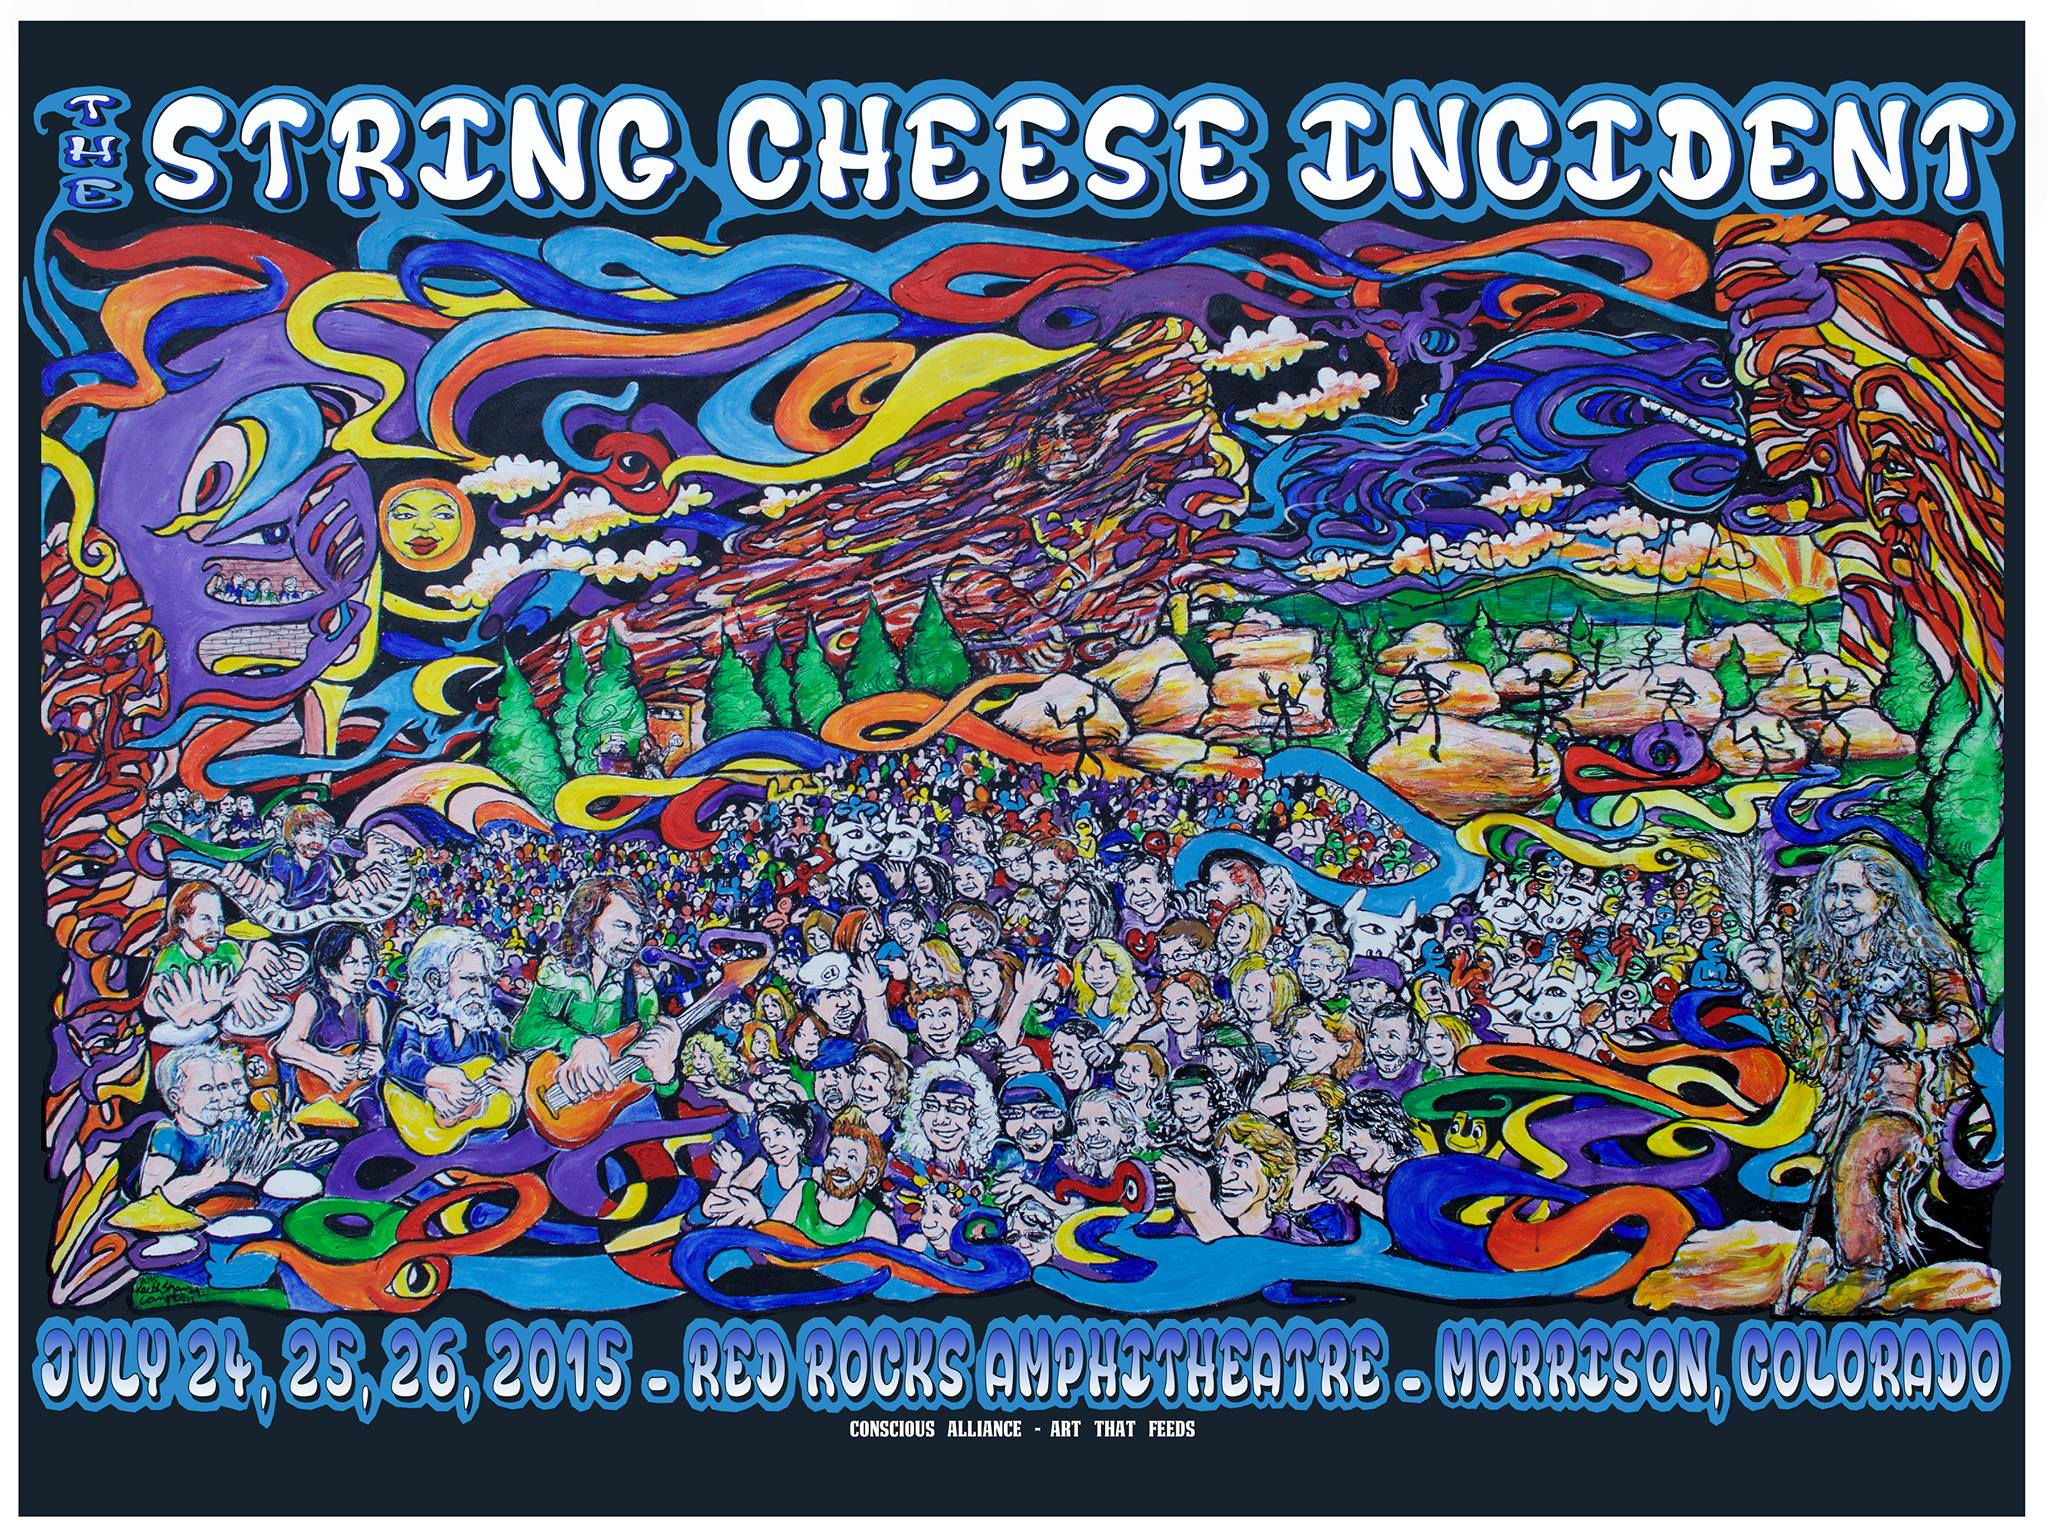 2015 Red Rocks Conscious Alliance Art That Feeds Poster by Scramble Campbell